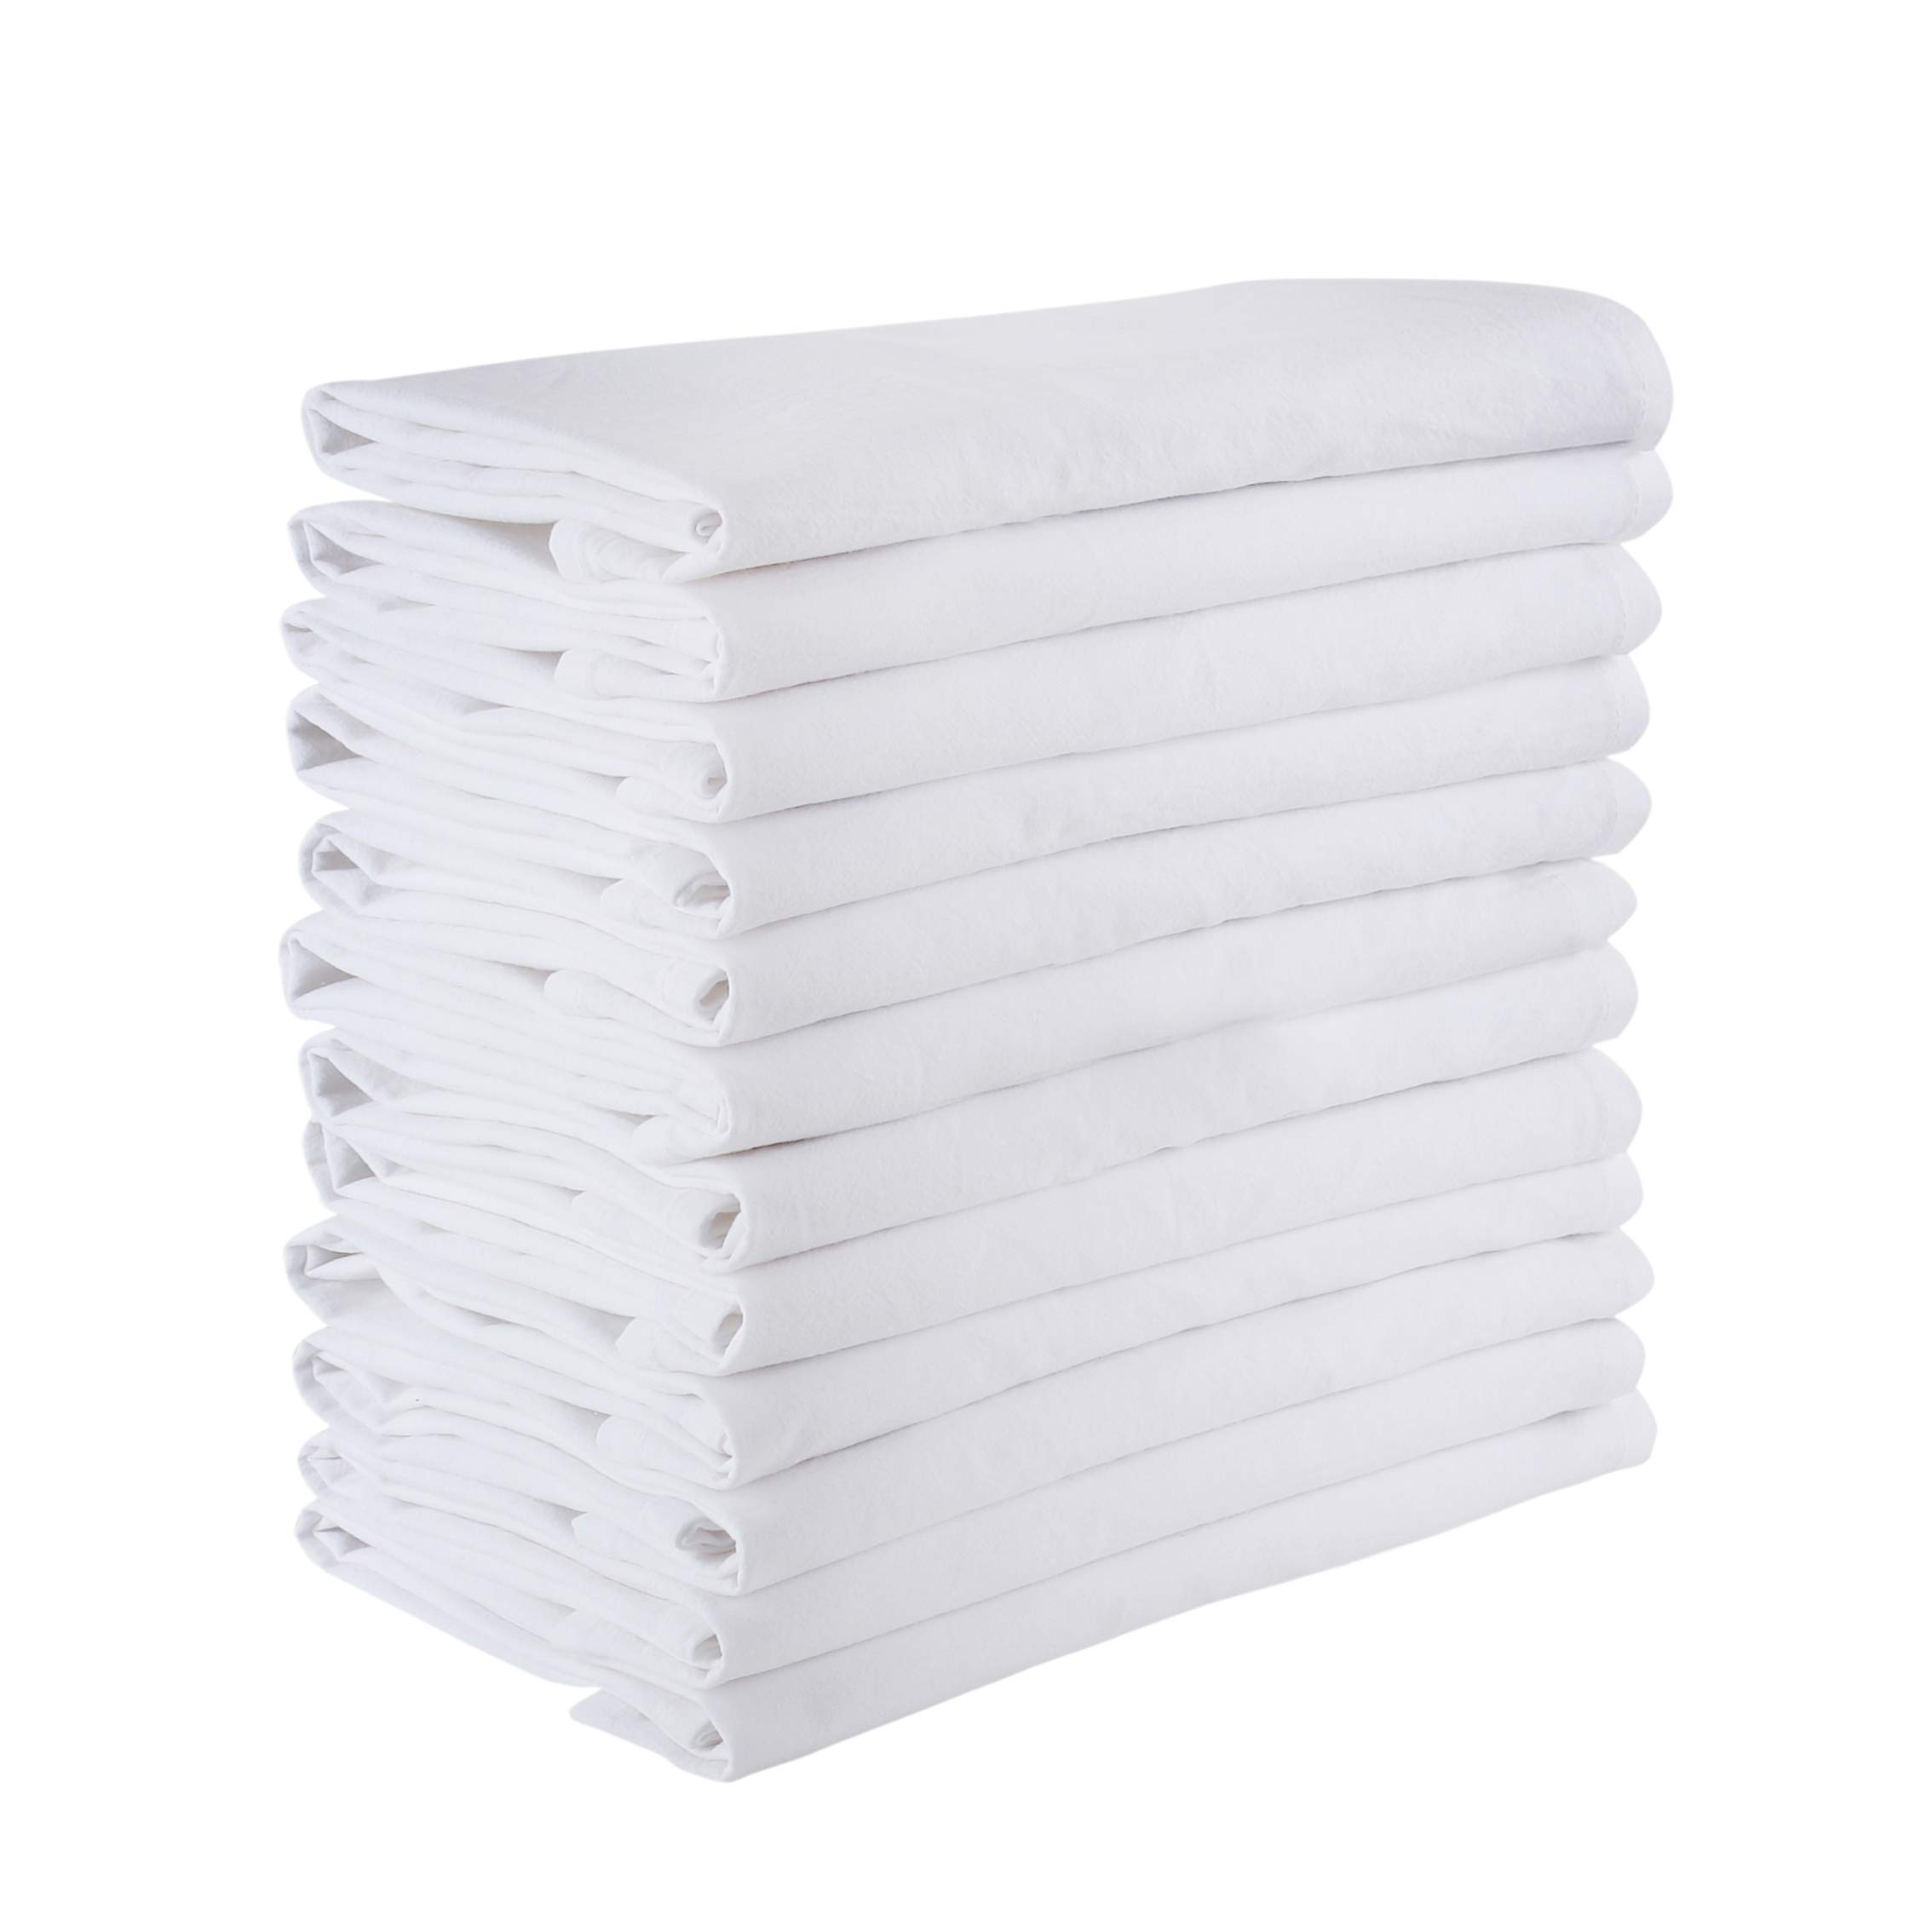 Floursack towels (Set of 12) Soft dish towels, 18x18'', 100% Pure Cotton Fine Cloth Multi Use-Soft Cleaning cloth, Lint Free, Cheese cloth, Cloth strainer, Certified Product, Eco friendly and Safe